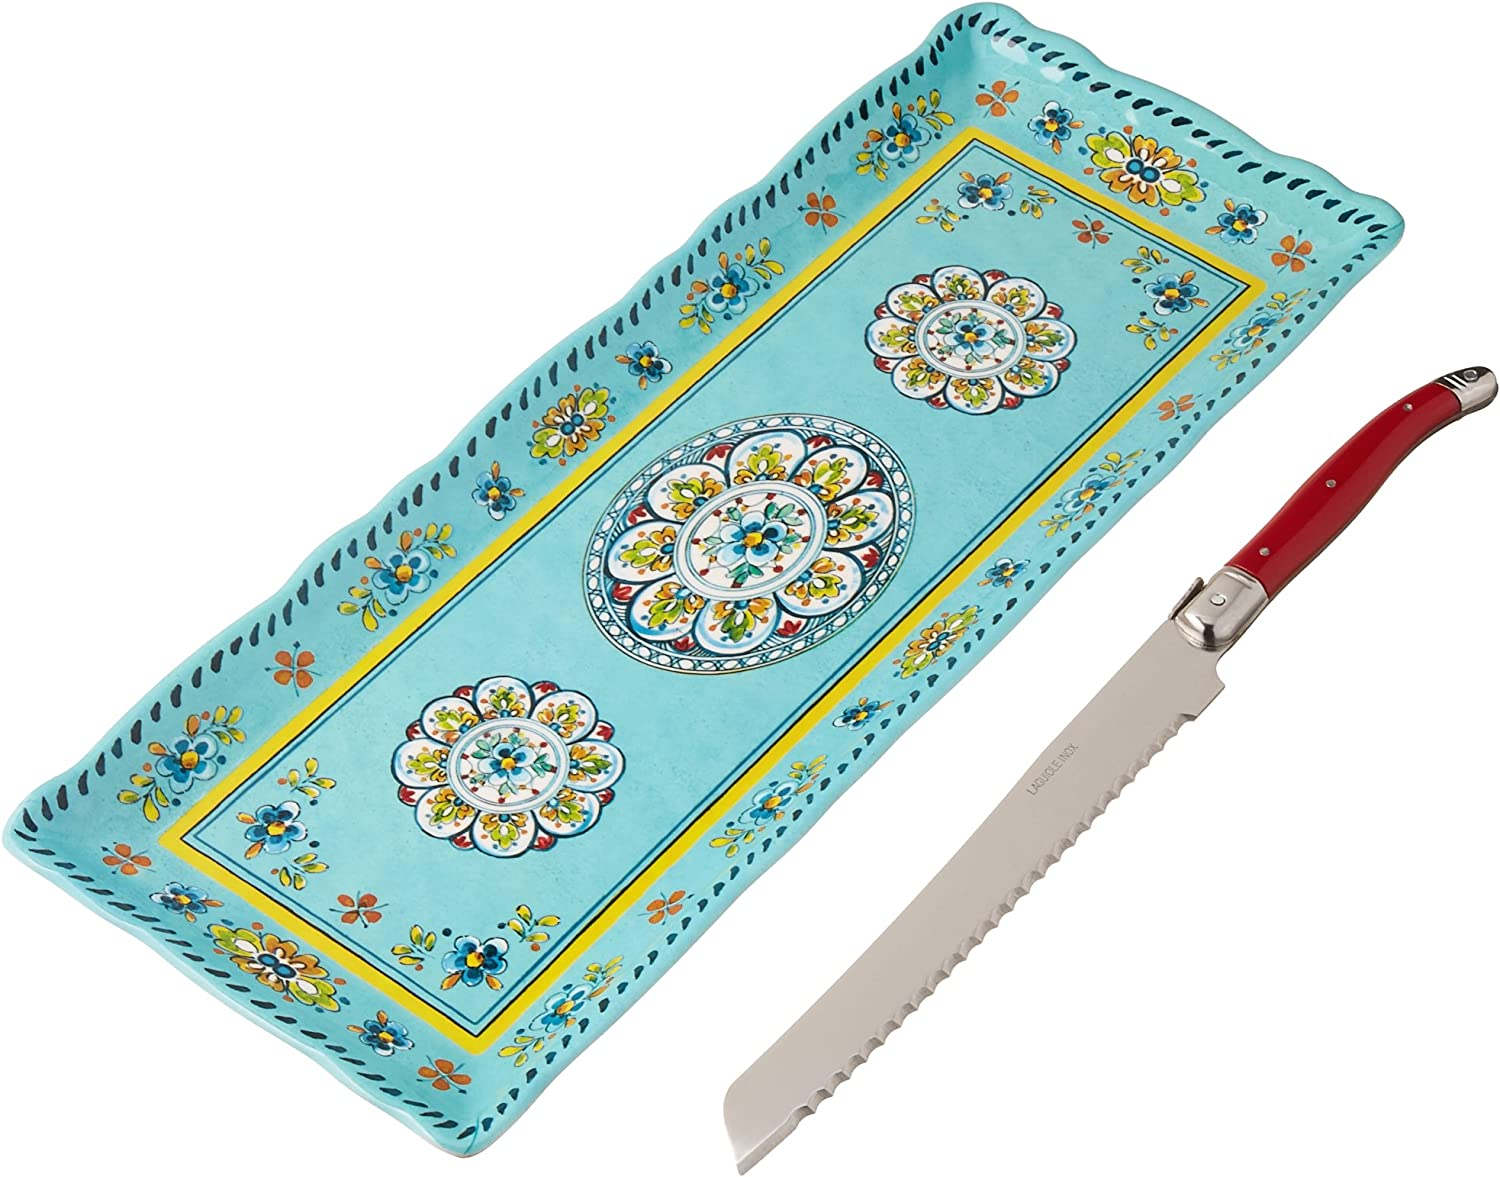 Le Cadeaux Madrid Melamine Baguette Max 52% OFF Knif Tray Free shipping Laguiole and Bread